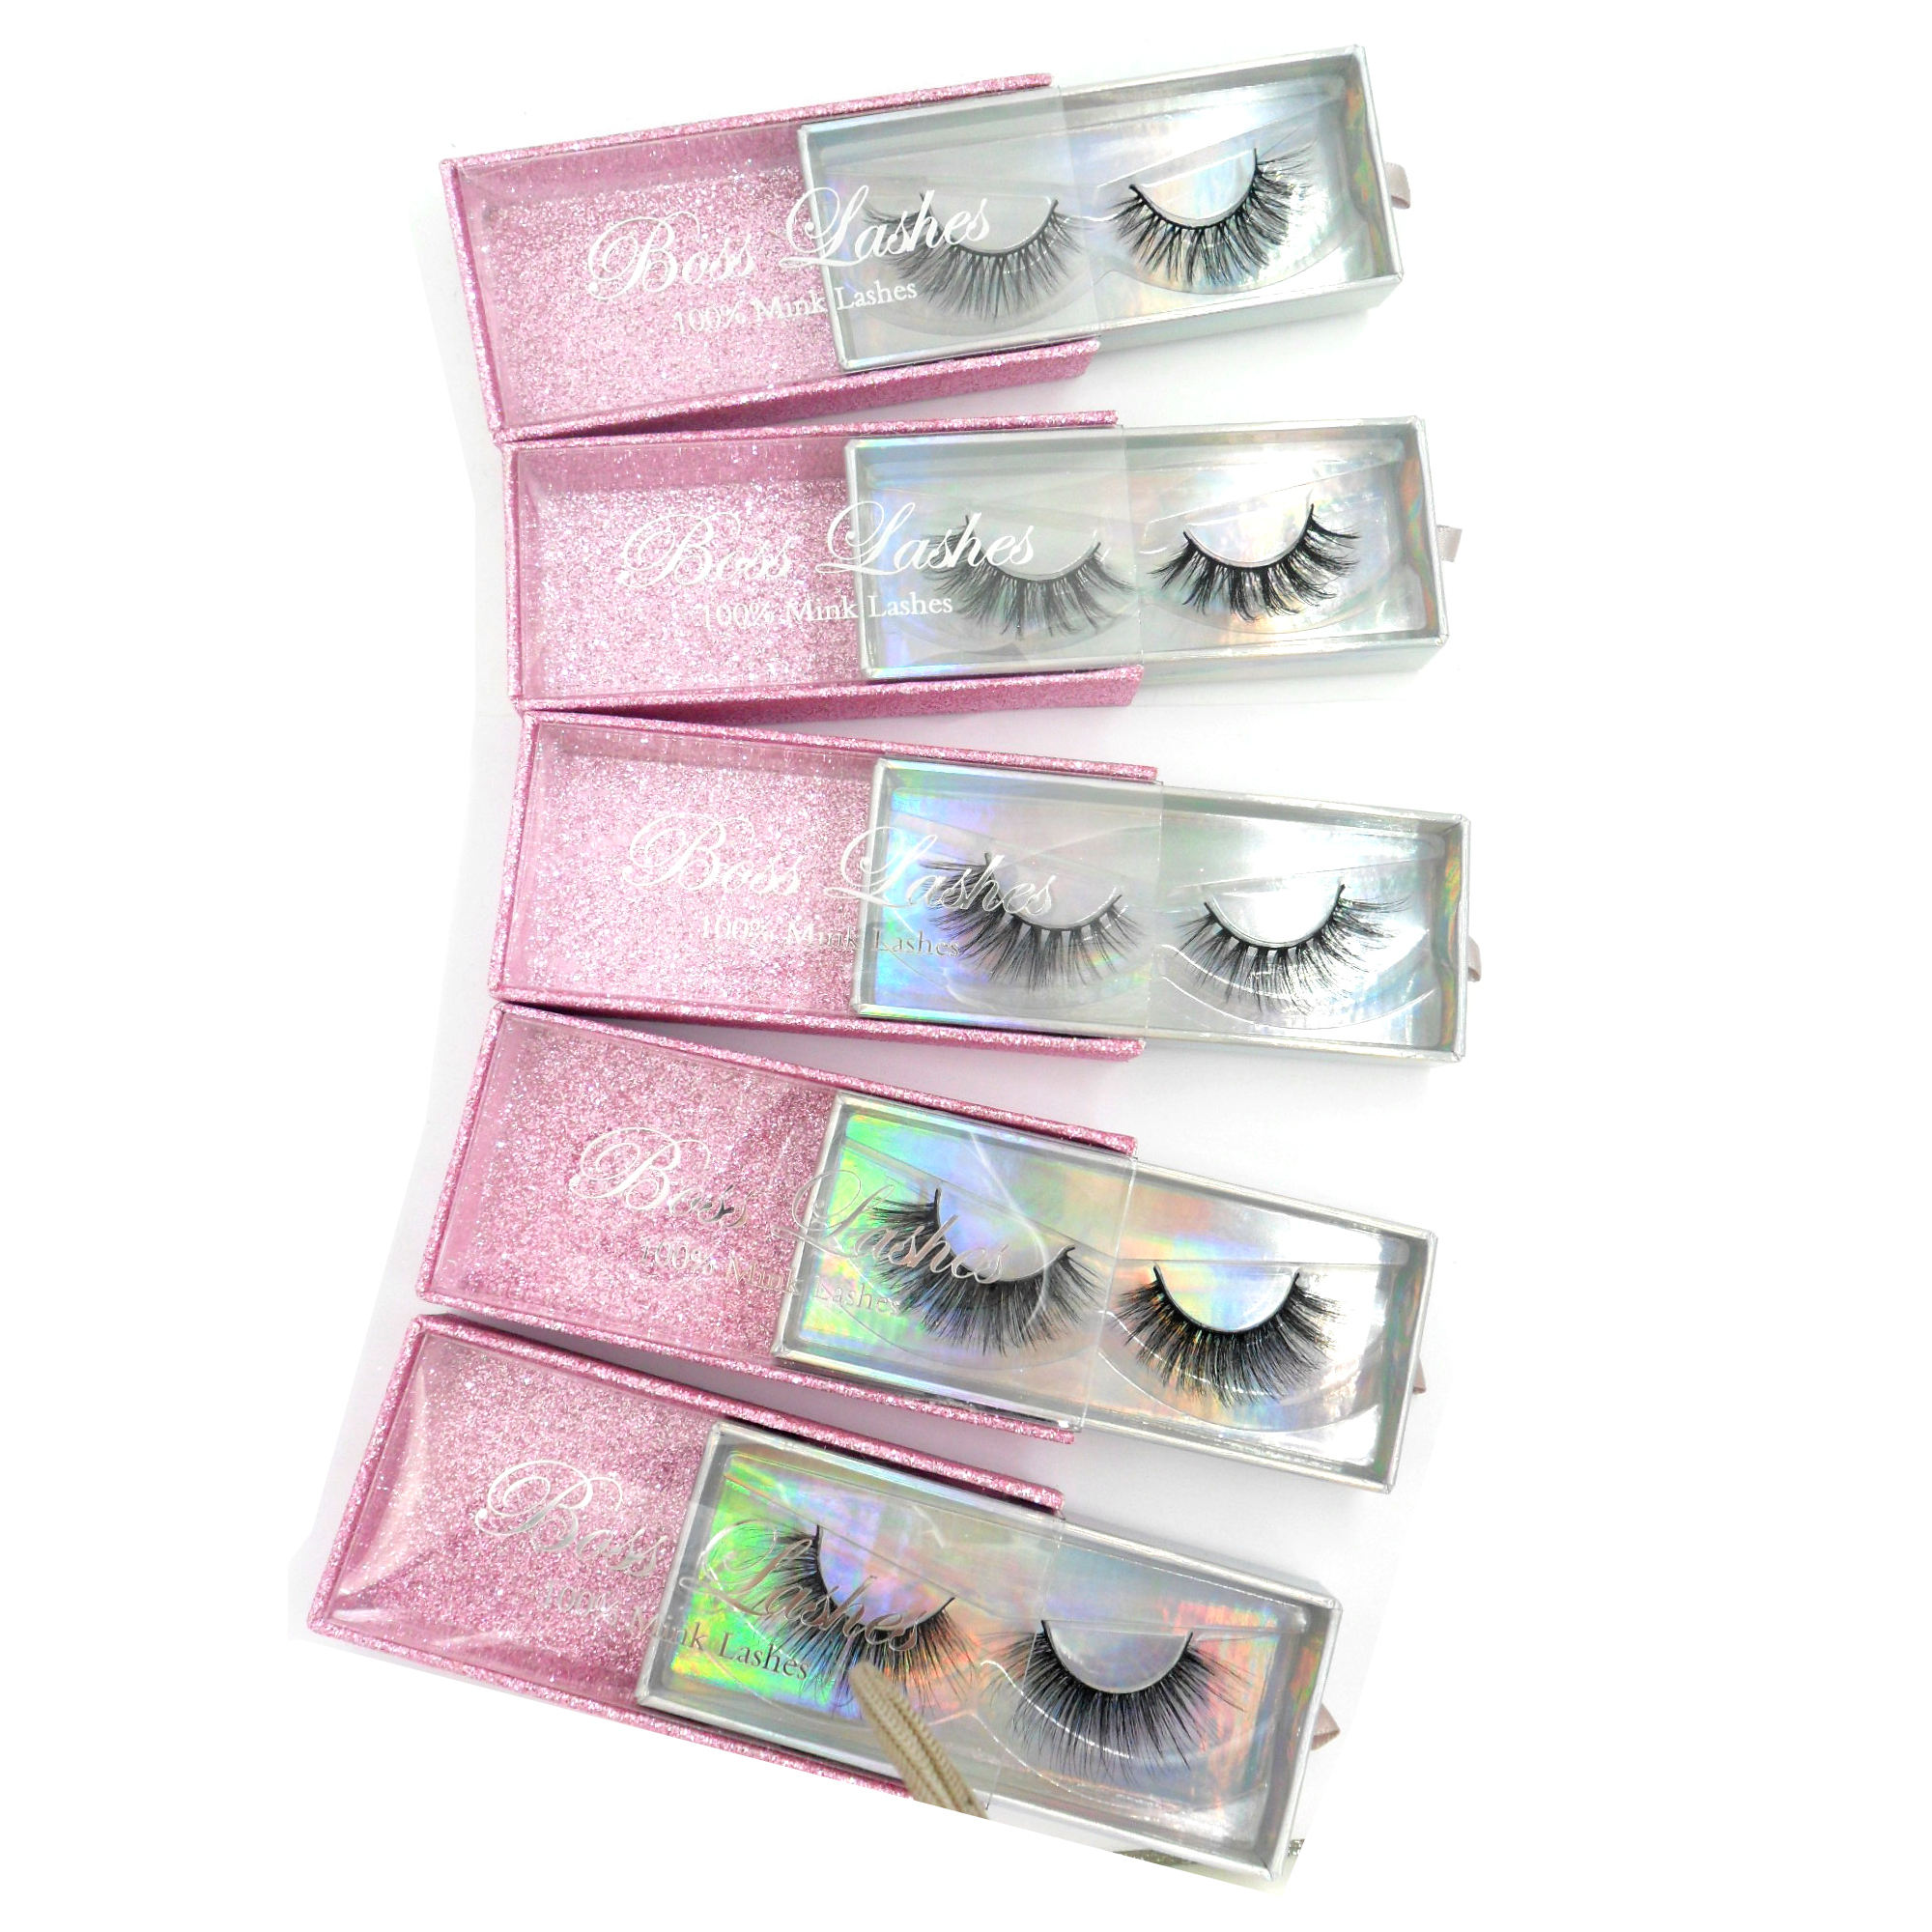 Baiside eyelashes 3d mink eyelashes faux lashes false eyelashes manufacturer